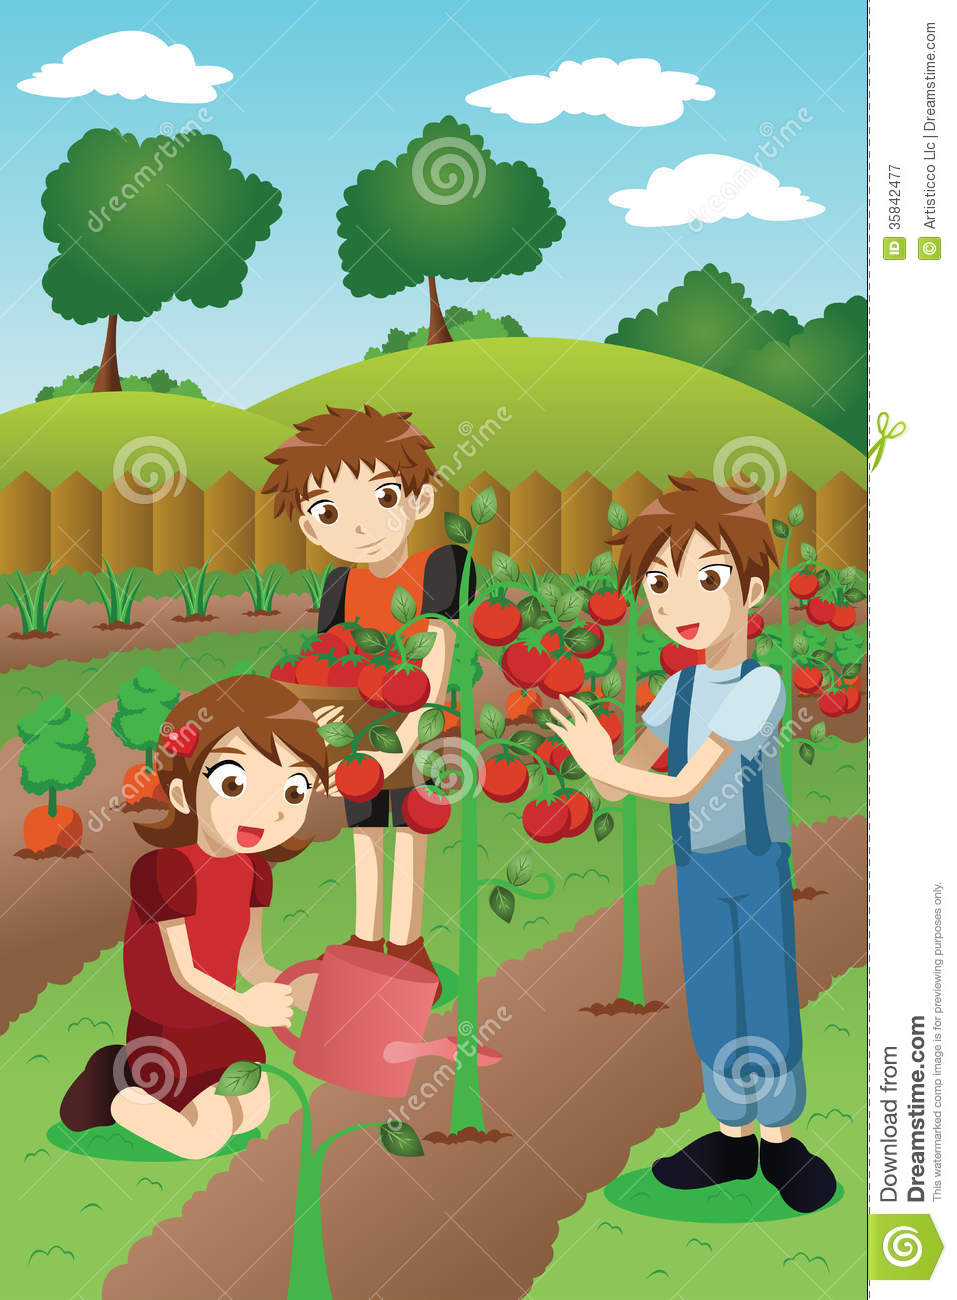 Kids Planting Vegetables And Fruits Stock Vector - Image ...